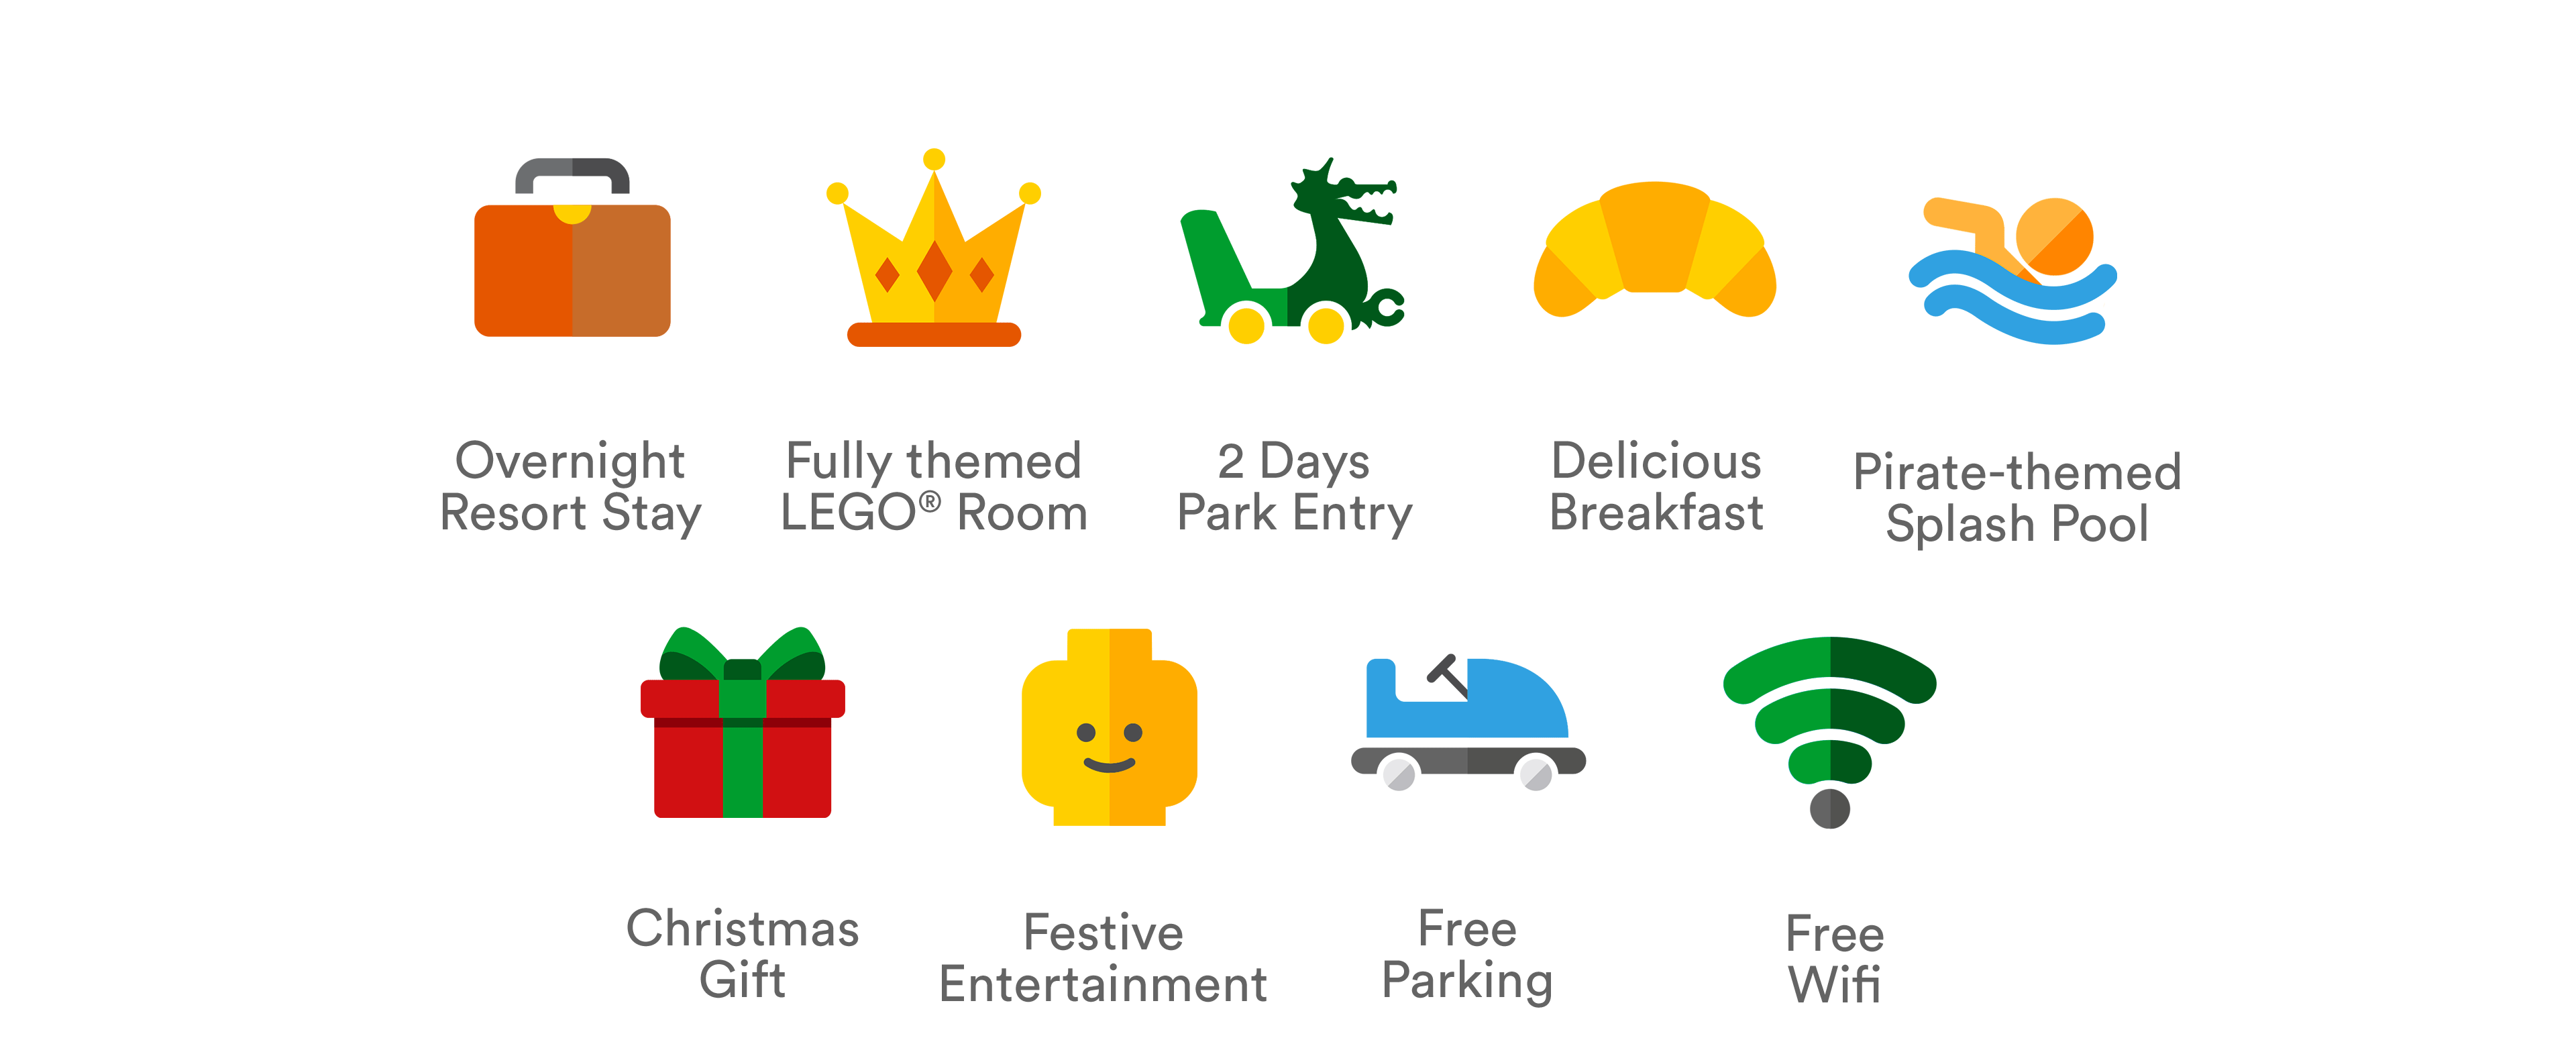 LEGOLAND Windsor Resort Santa Sleepover packages include: an overnight Resort stay, breakfast, evening entertainment, free parking, Father Christmas meet & greet and more!